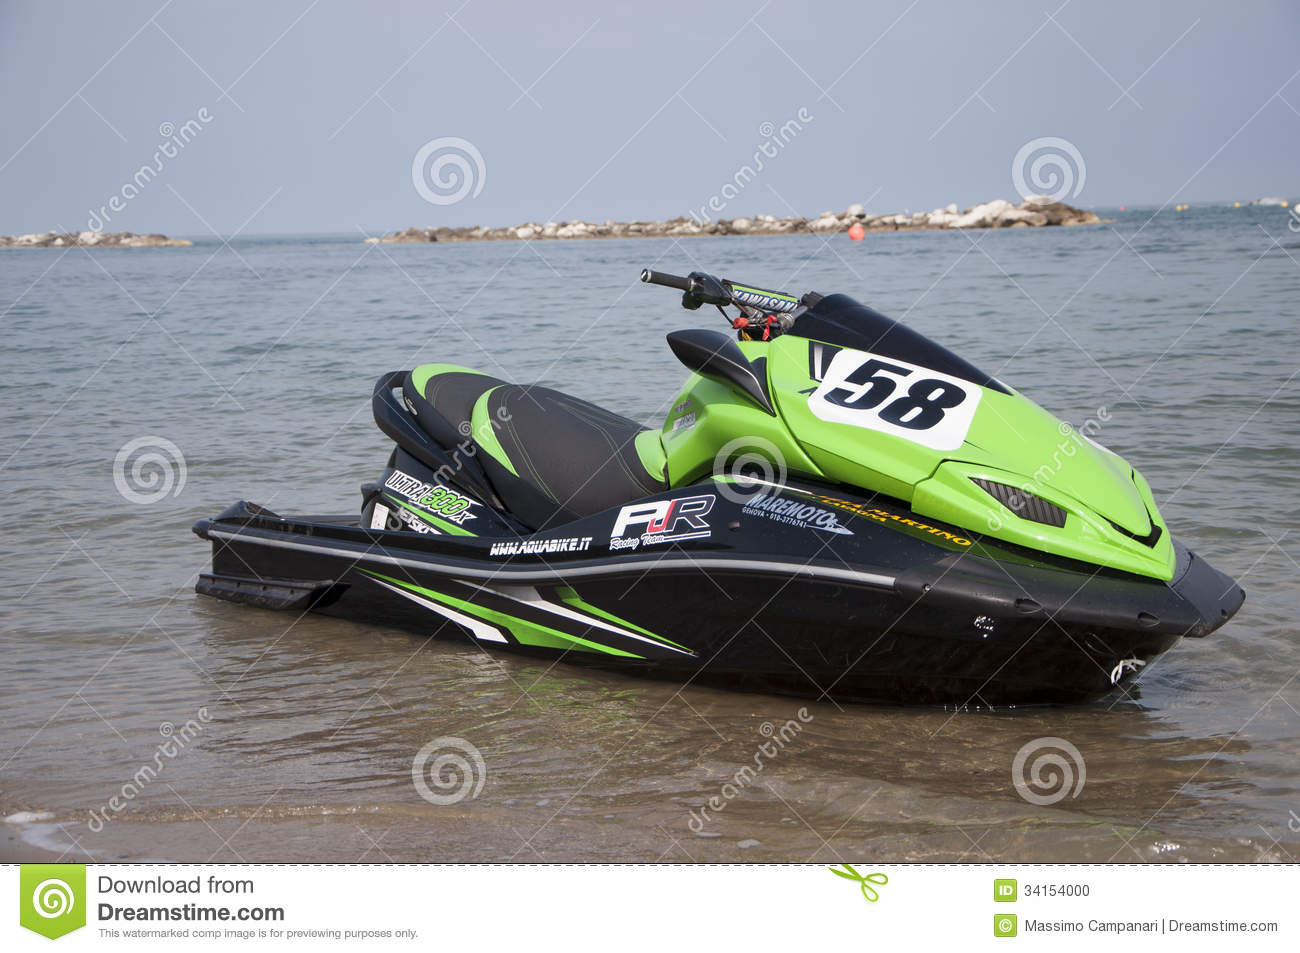 jet ski racers quotes quotesgram. Black Bedroom Furniture Sets. Home Design Ideas